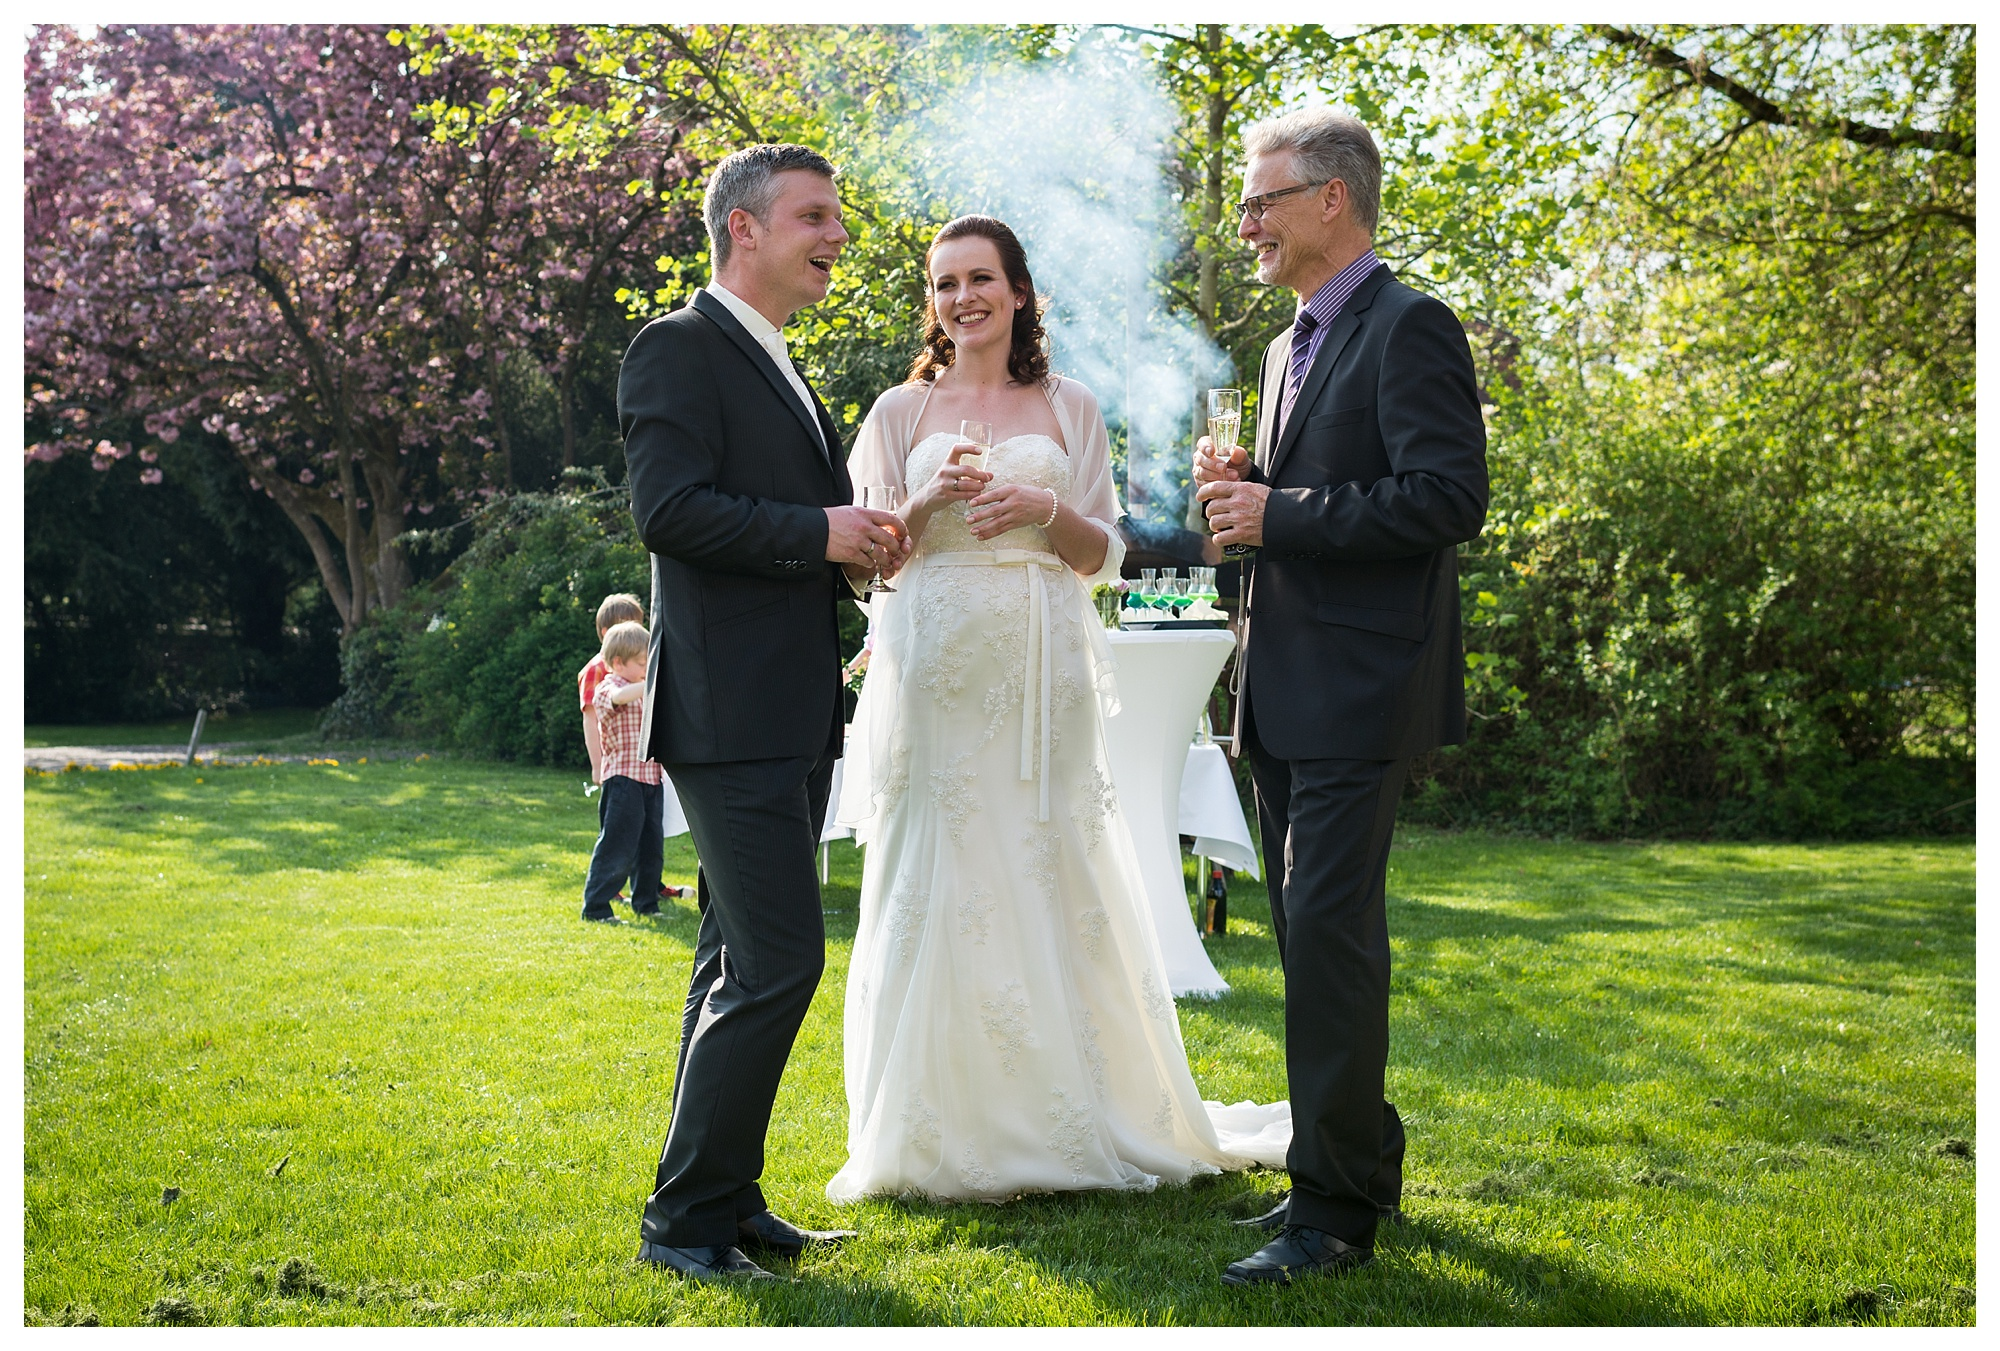 Fotograf Konstanz - Hochzeitsreportage Bettina Martin Heilbronn Elmar Feuerbacher Photography 45 - Wedding Story in Schöntal close to Heilbronn  - 111 -